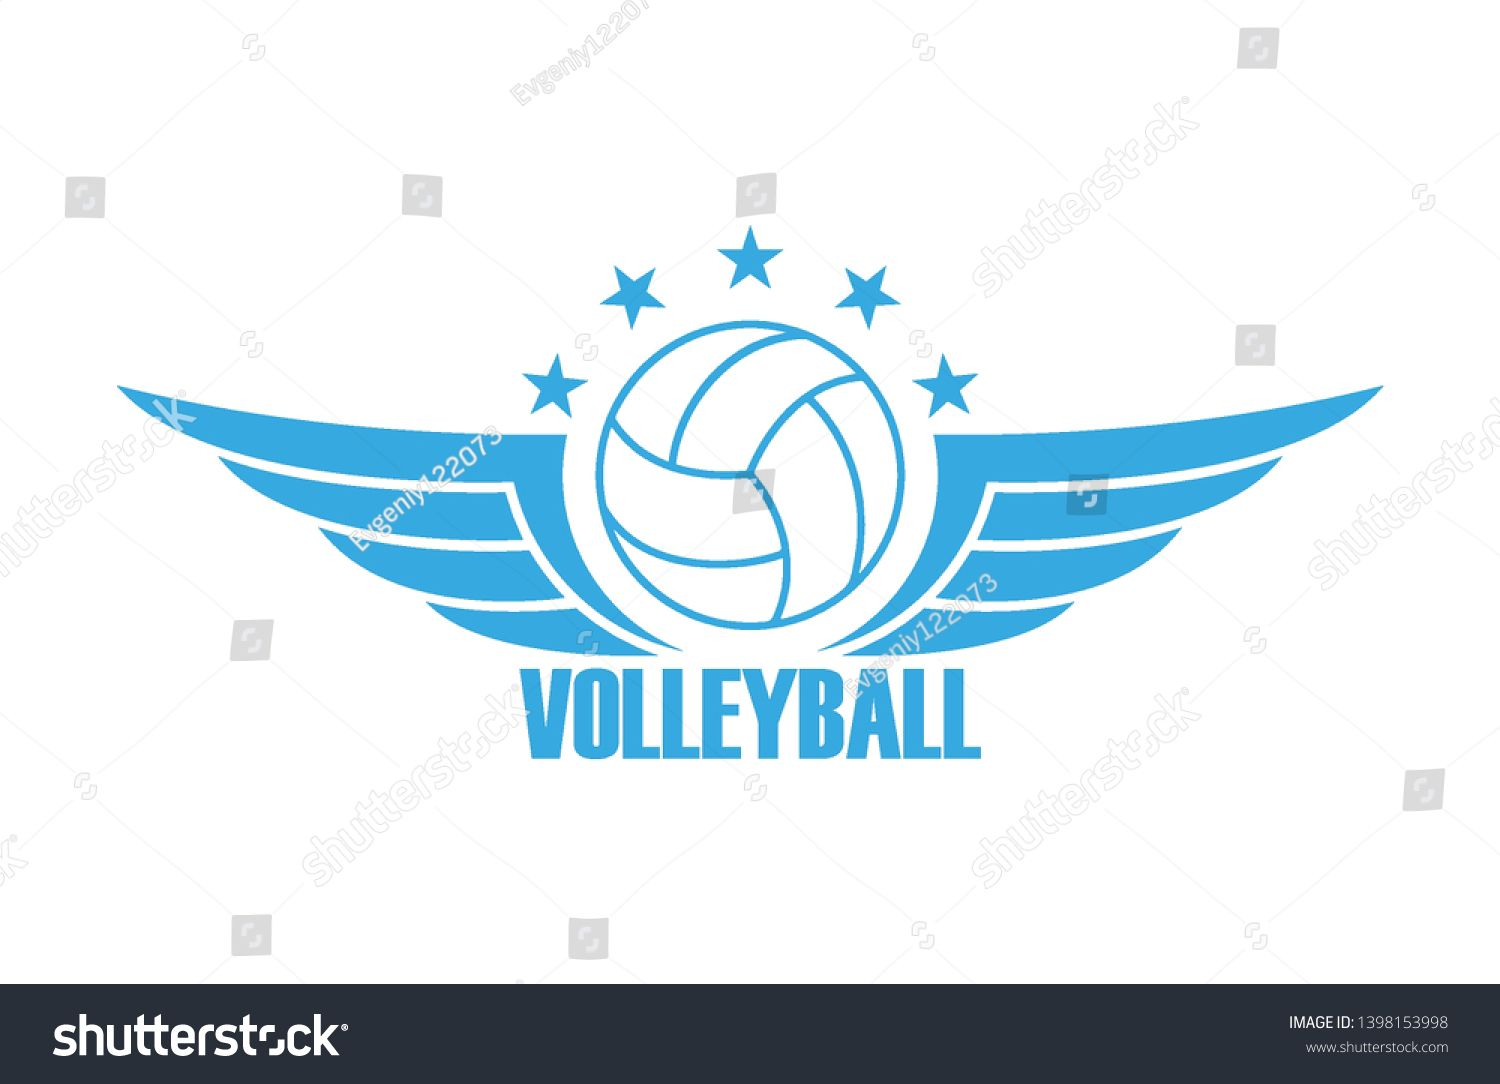 Illustration On A Sports Theme In Blue Color Volleyball Ball Wings Stars And Text Sport Club Logo Ad Sponsored Blu Sports Theme Blue Color Illustration